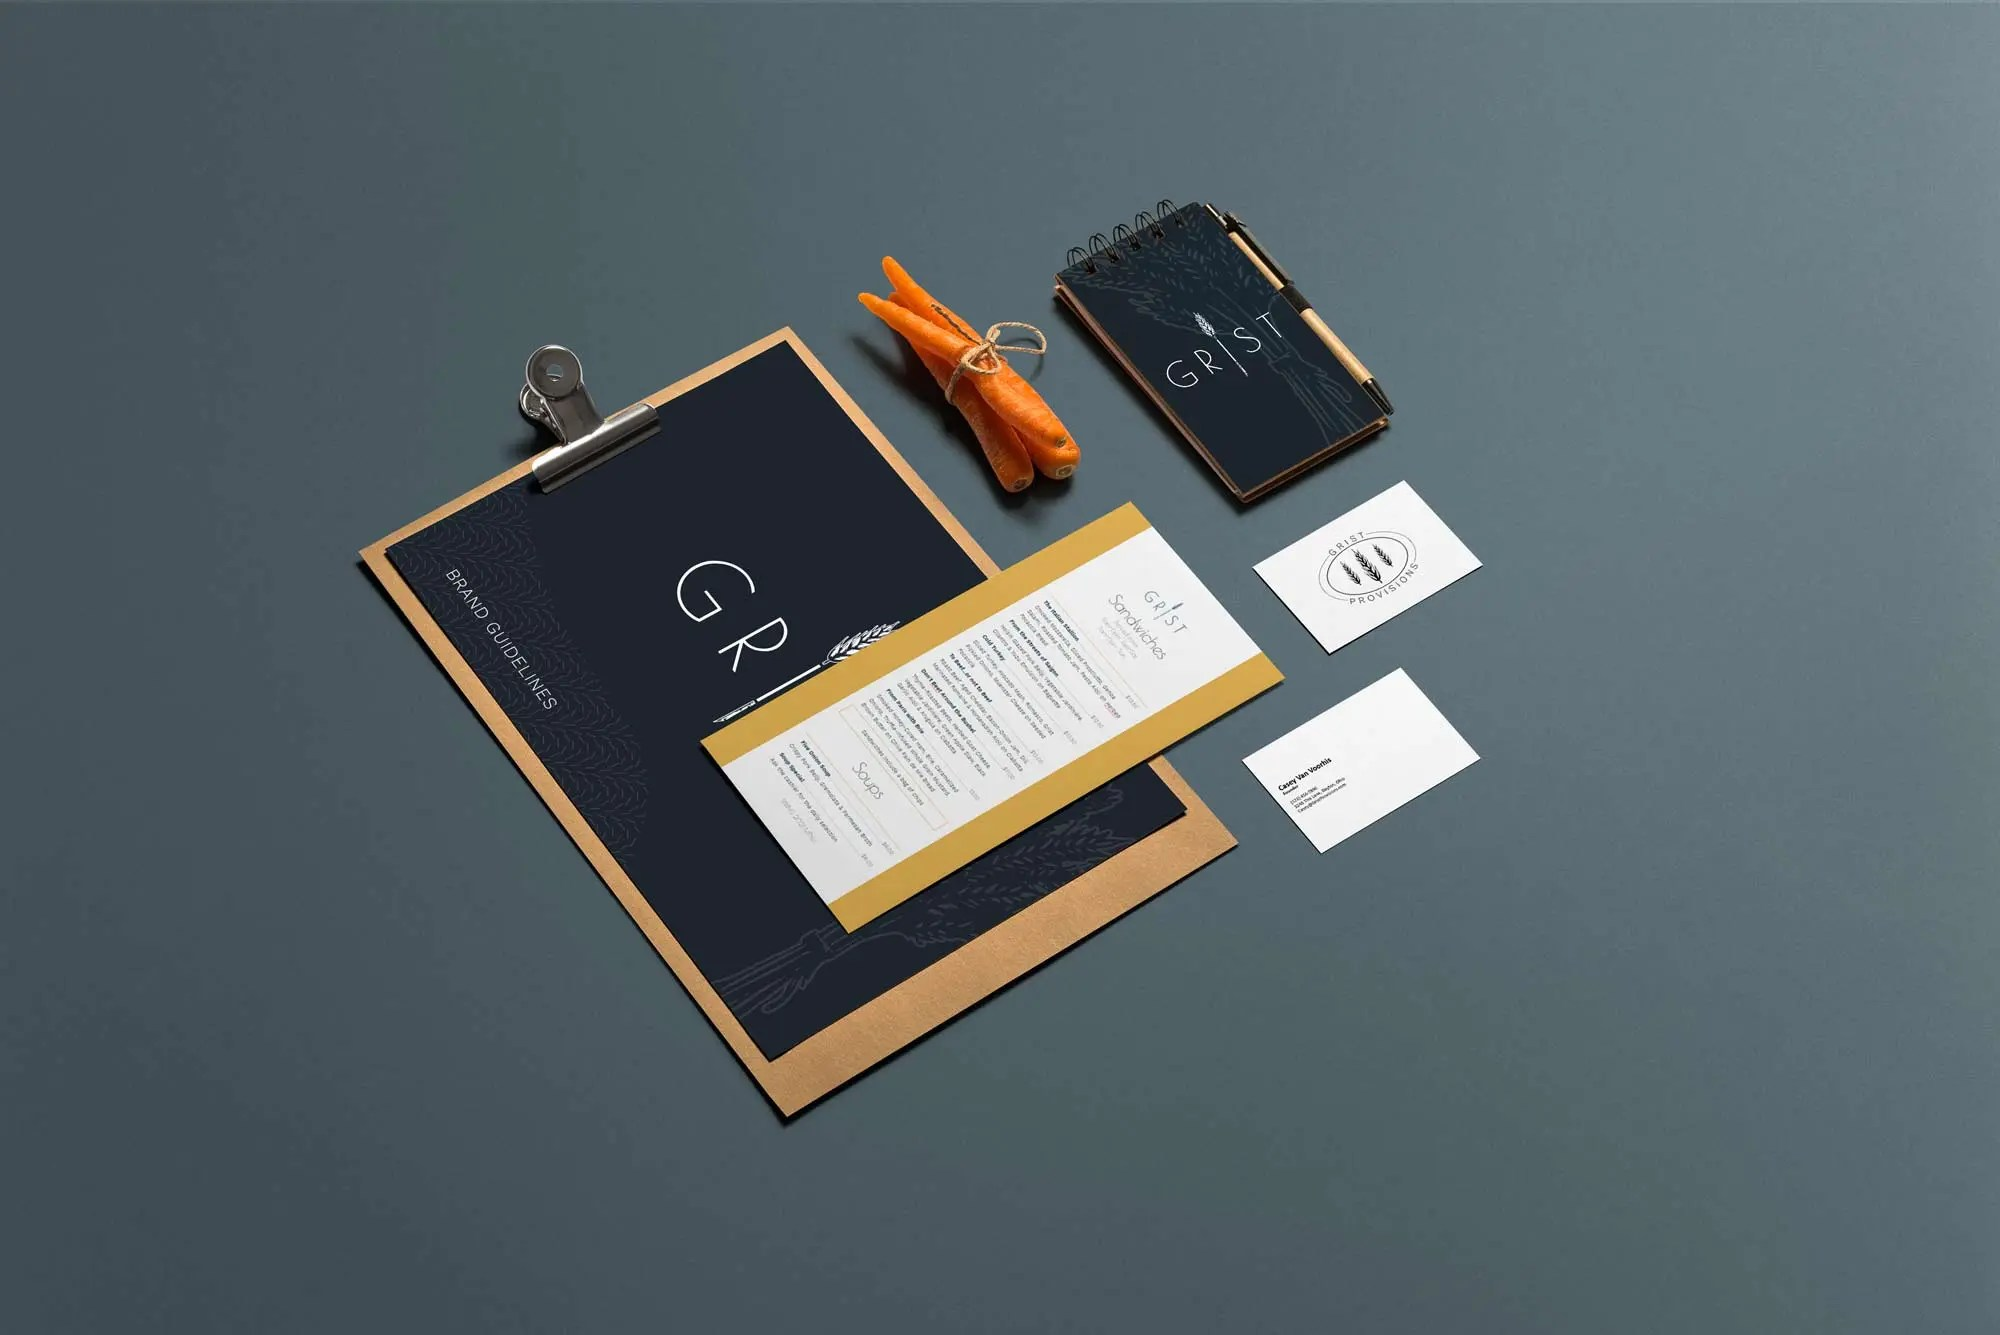 mock ups showing how the brand is implemented